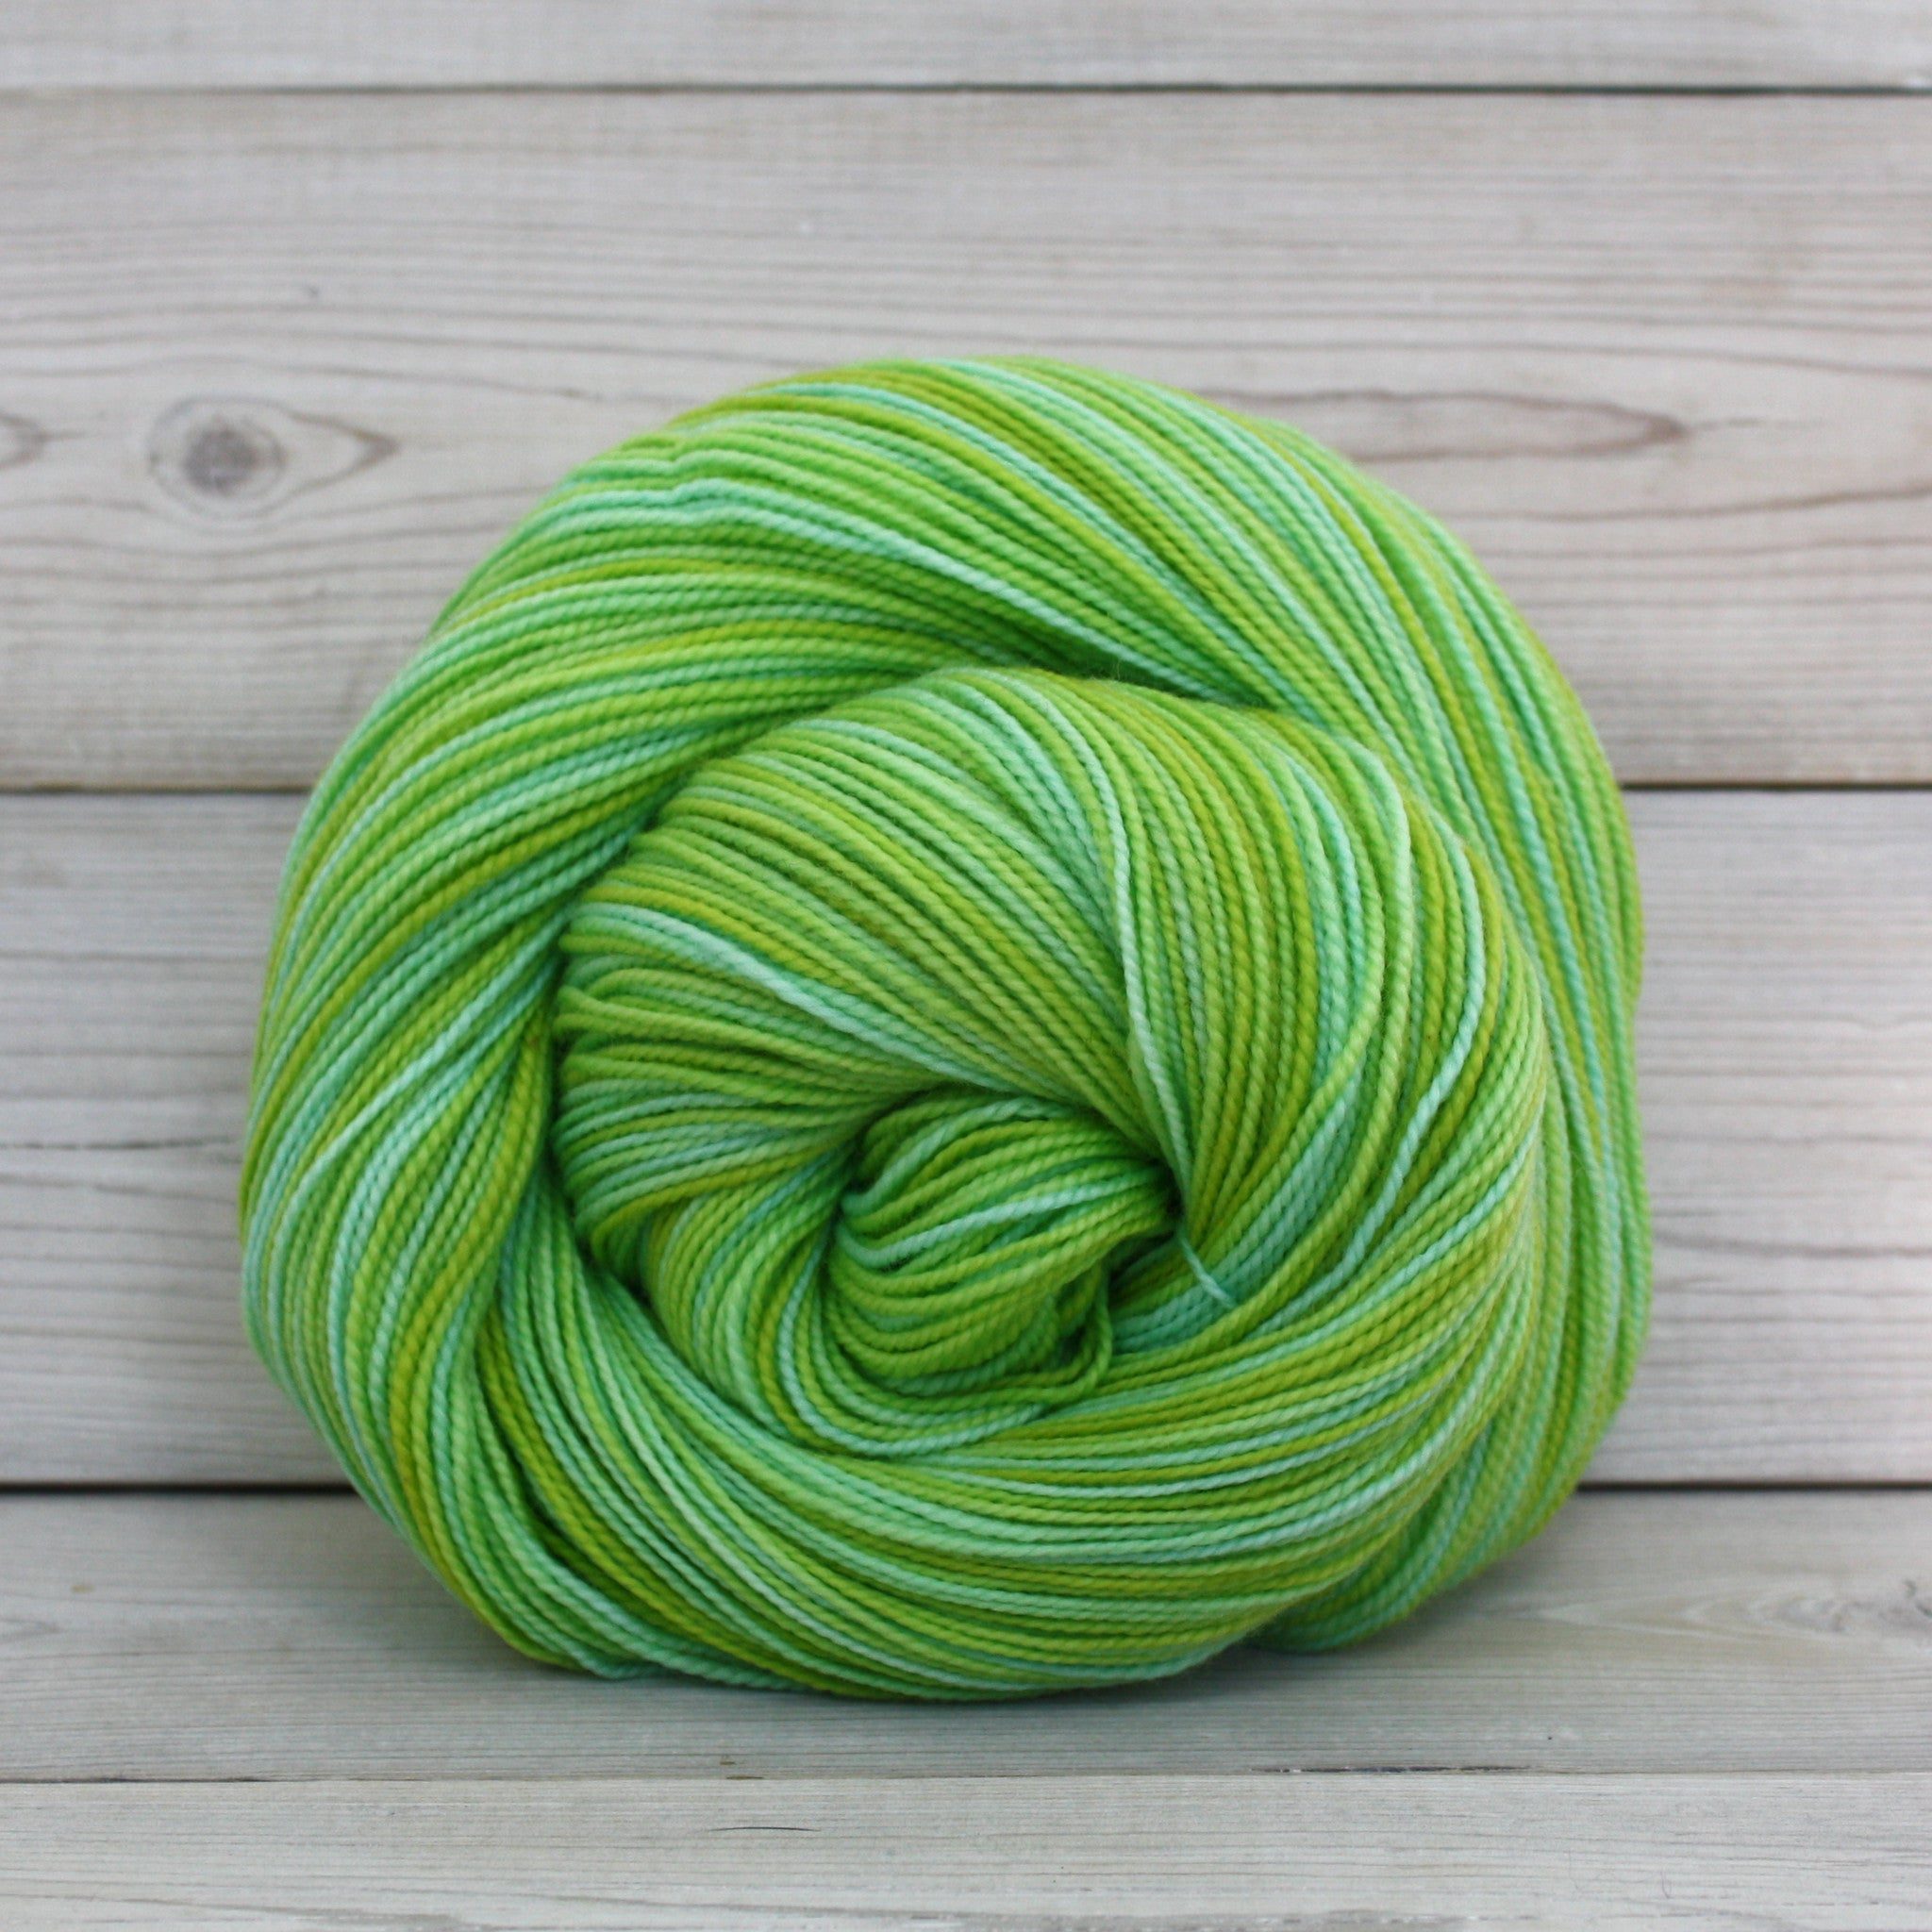 Luna Grey Fiber Arts Celeste Yarn | Colorway: Bahama Village